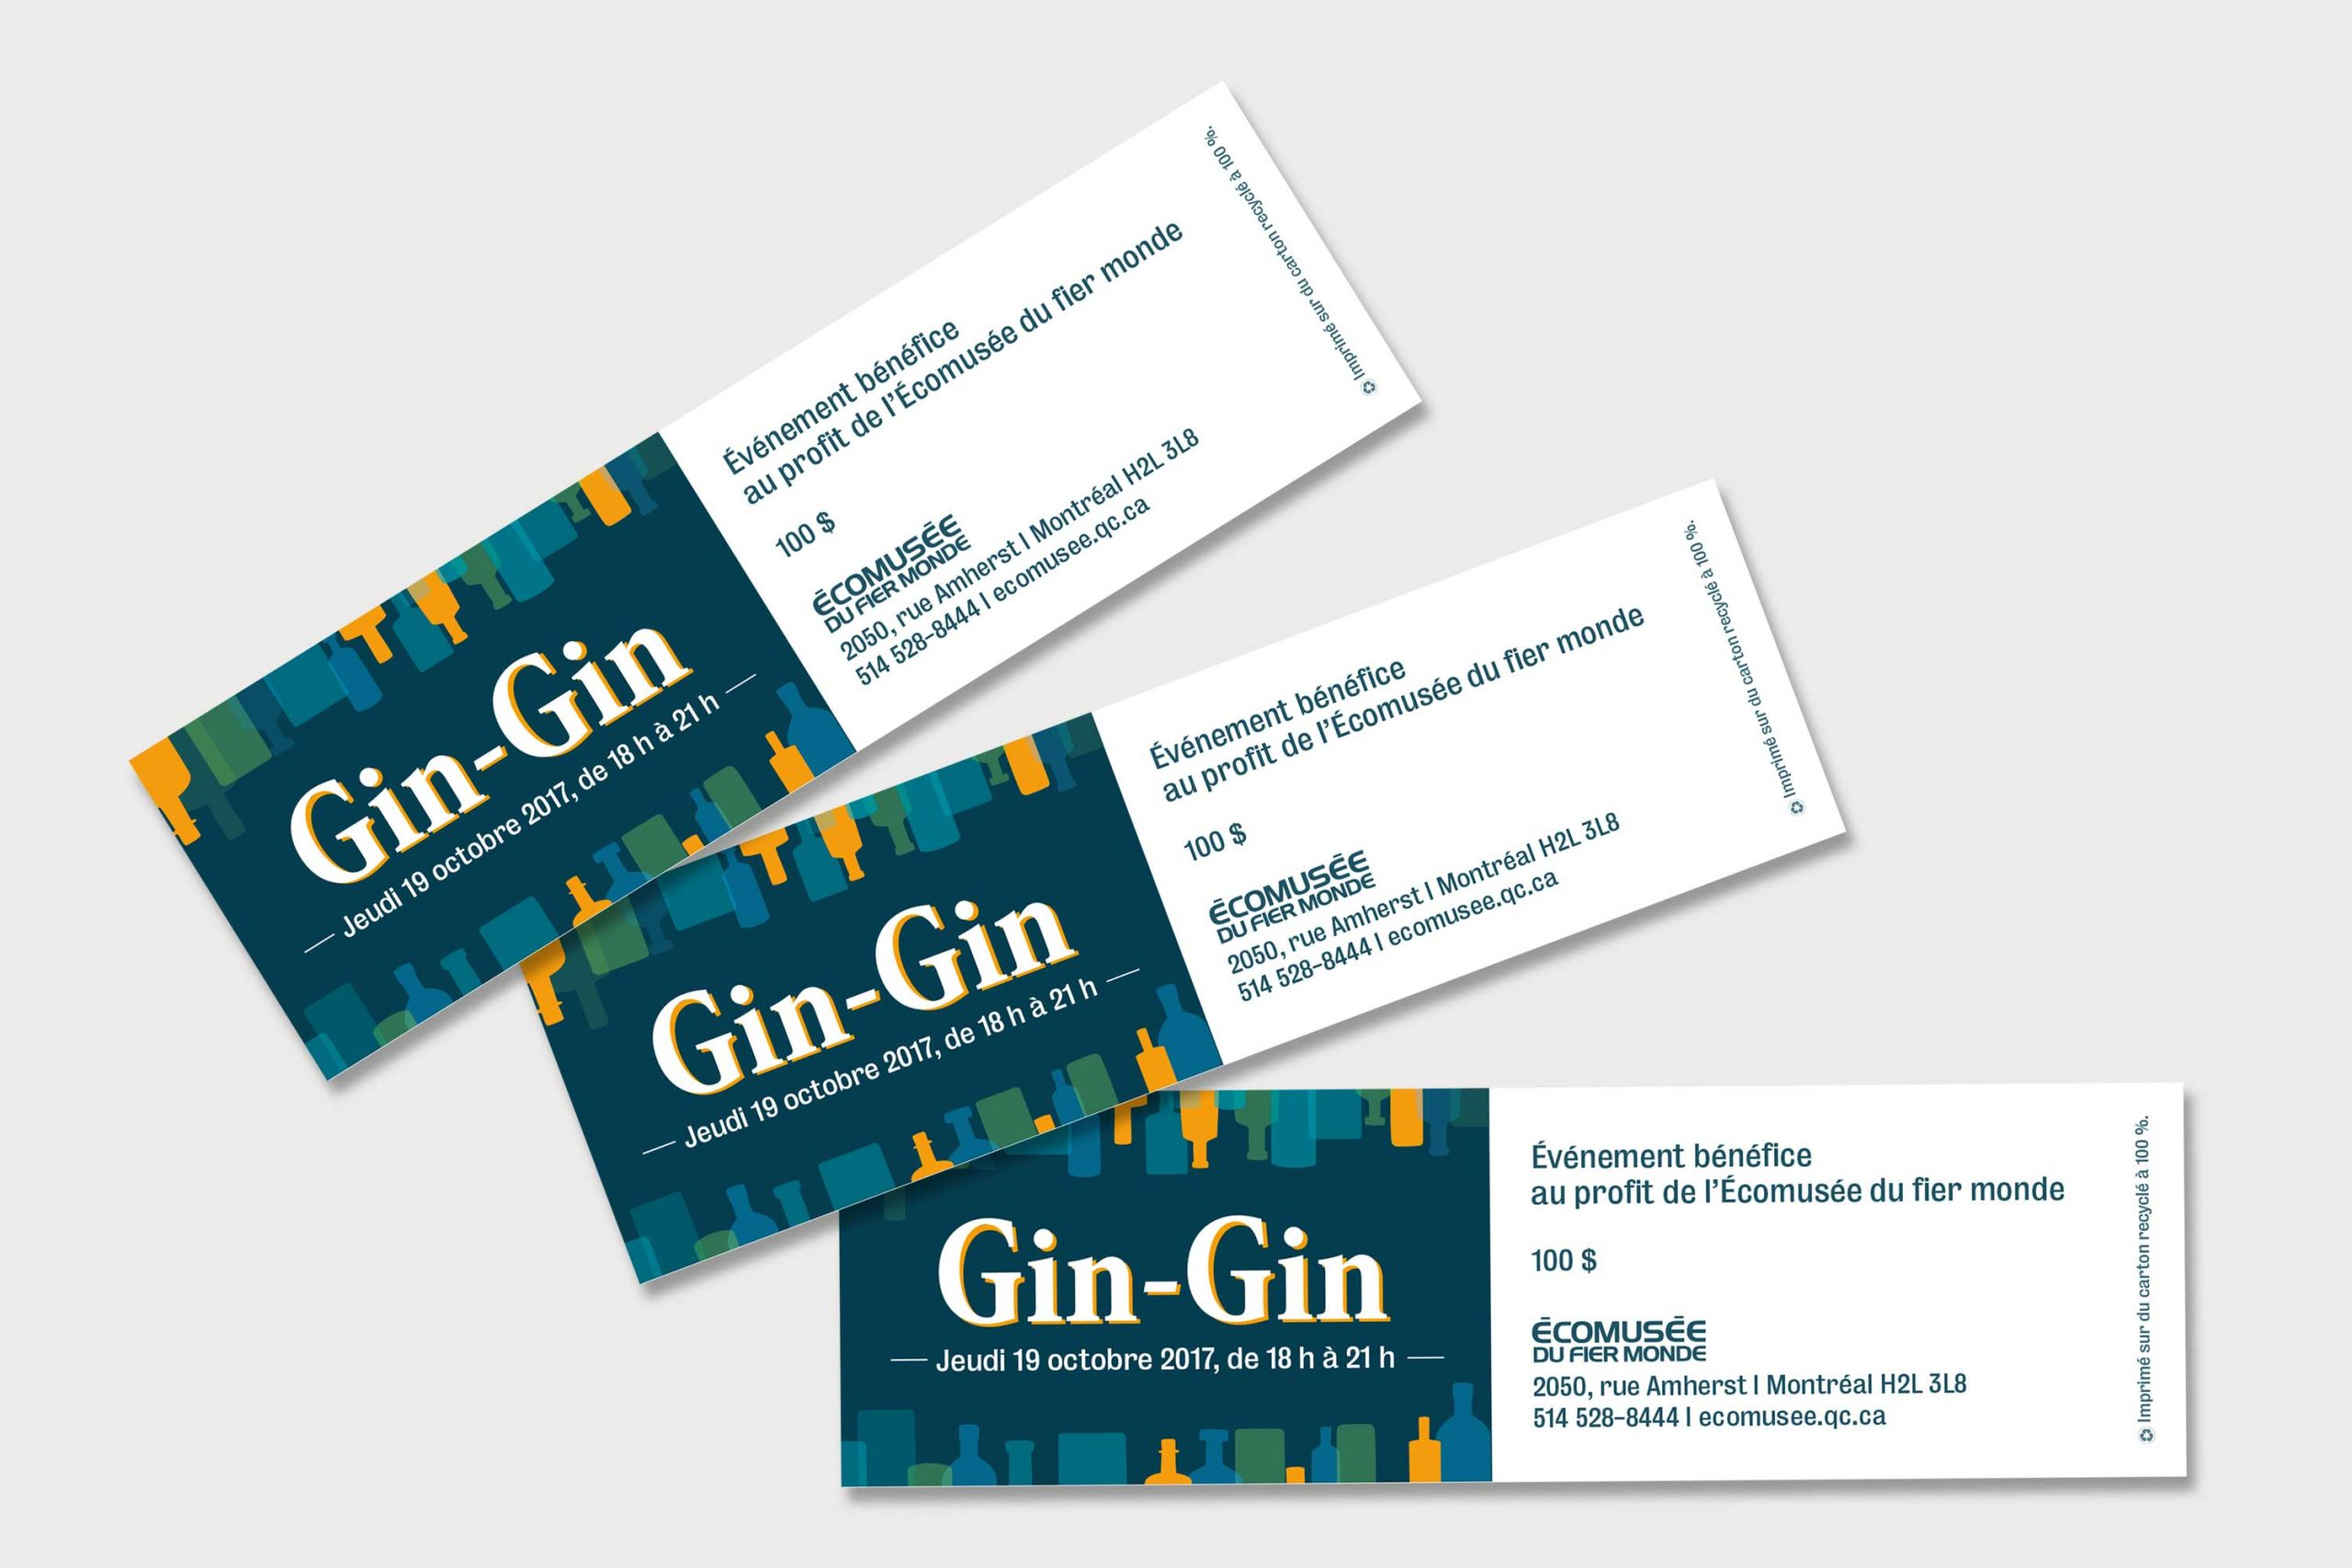 Mailys ORY - Graphiste | Outils promotionnels - Gin-Gin